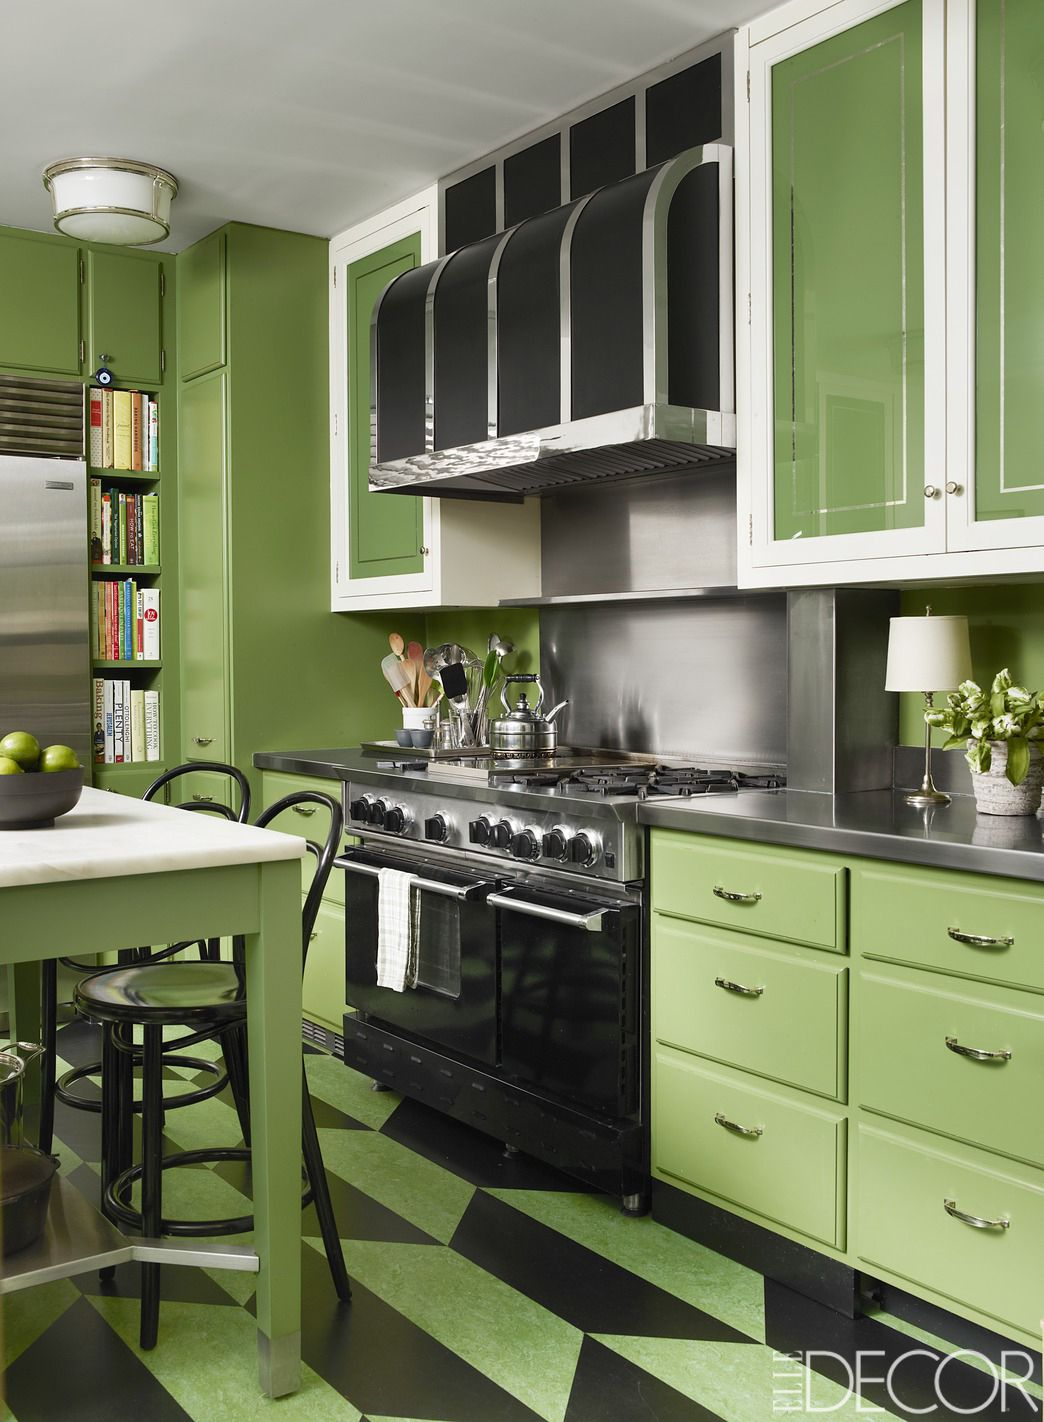 Redecorating Kitchen 40 Small Kitchen Design Ideas Decorating Tiny Kitchens